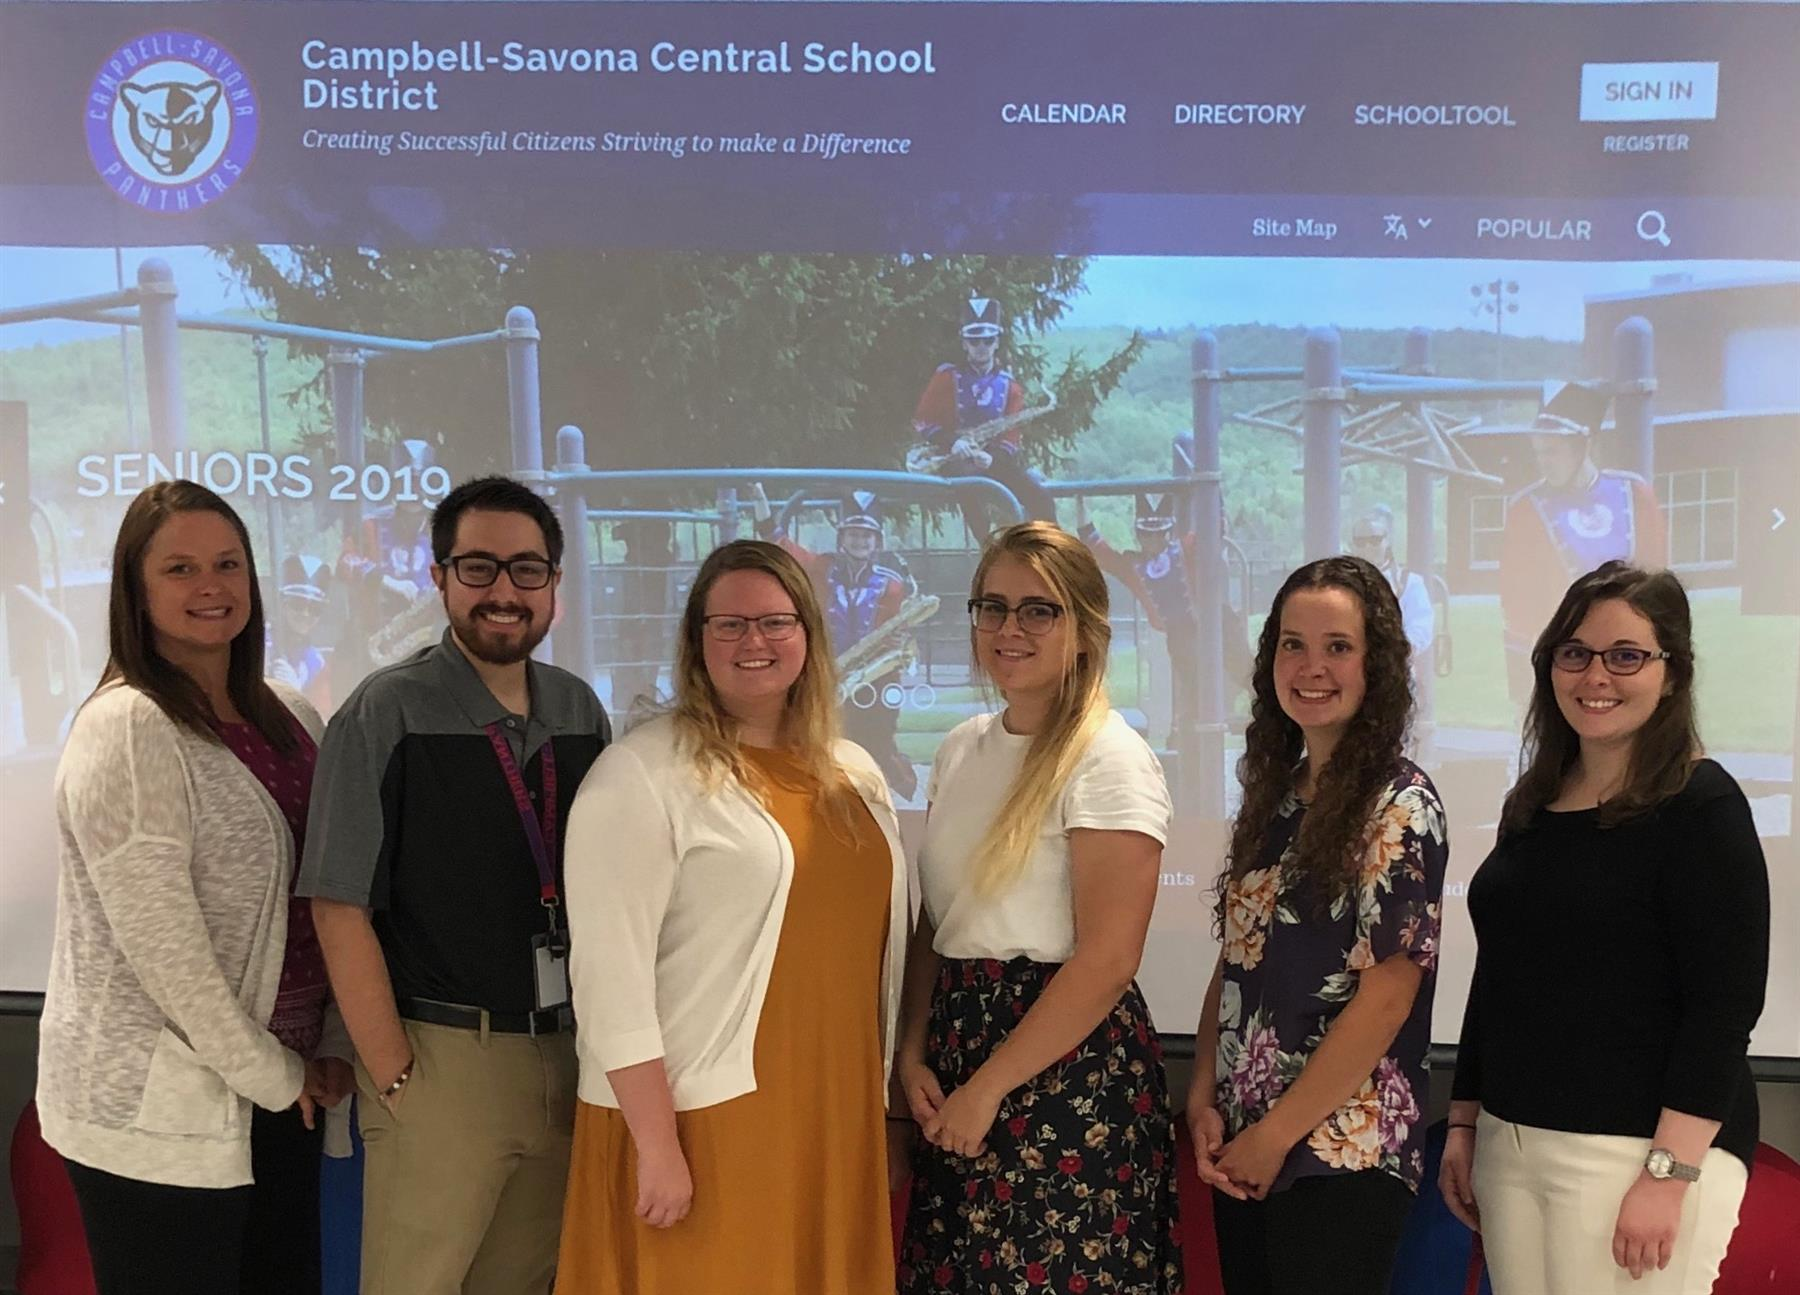 Campbell-Savona Central School District / Homepage